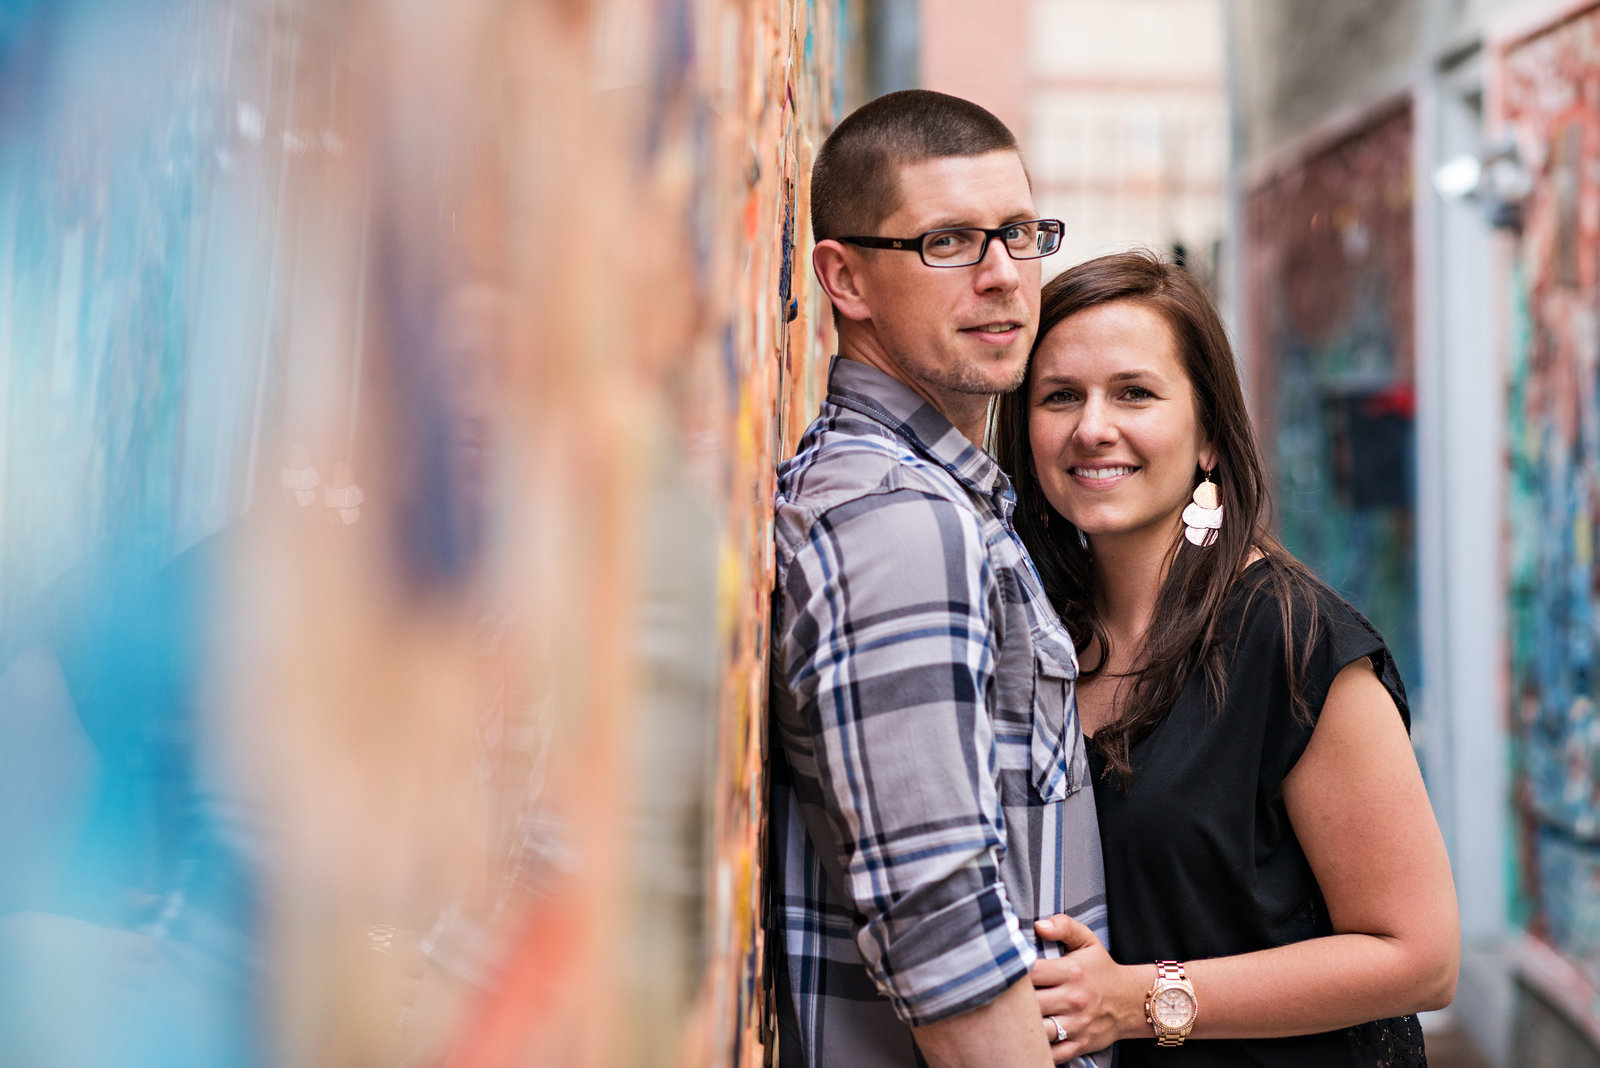 A happy couple lean against a south street wall covered in glass and shiny objects.